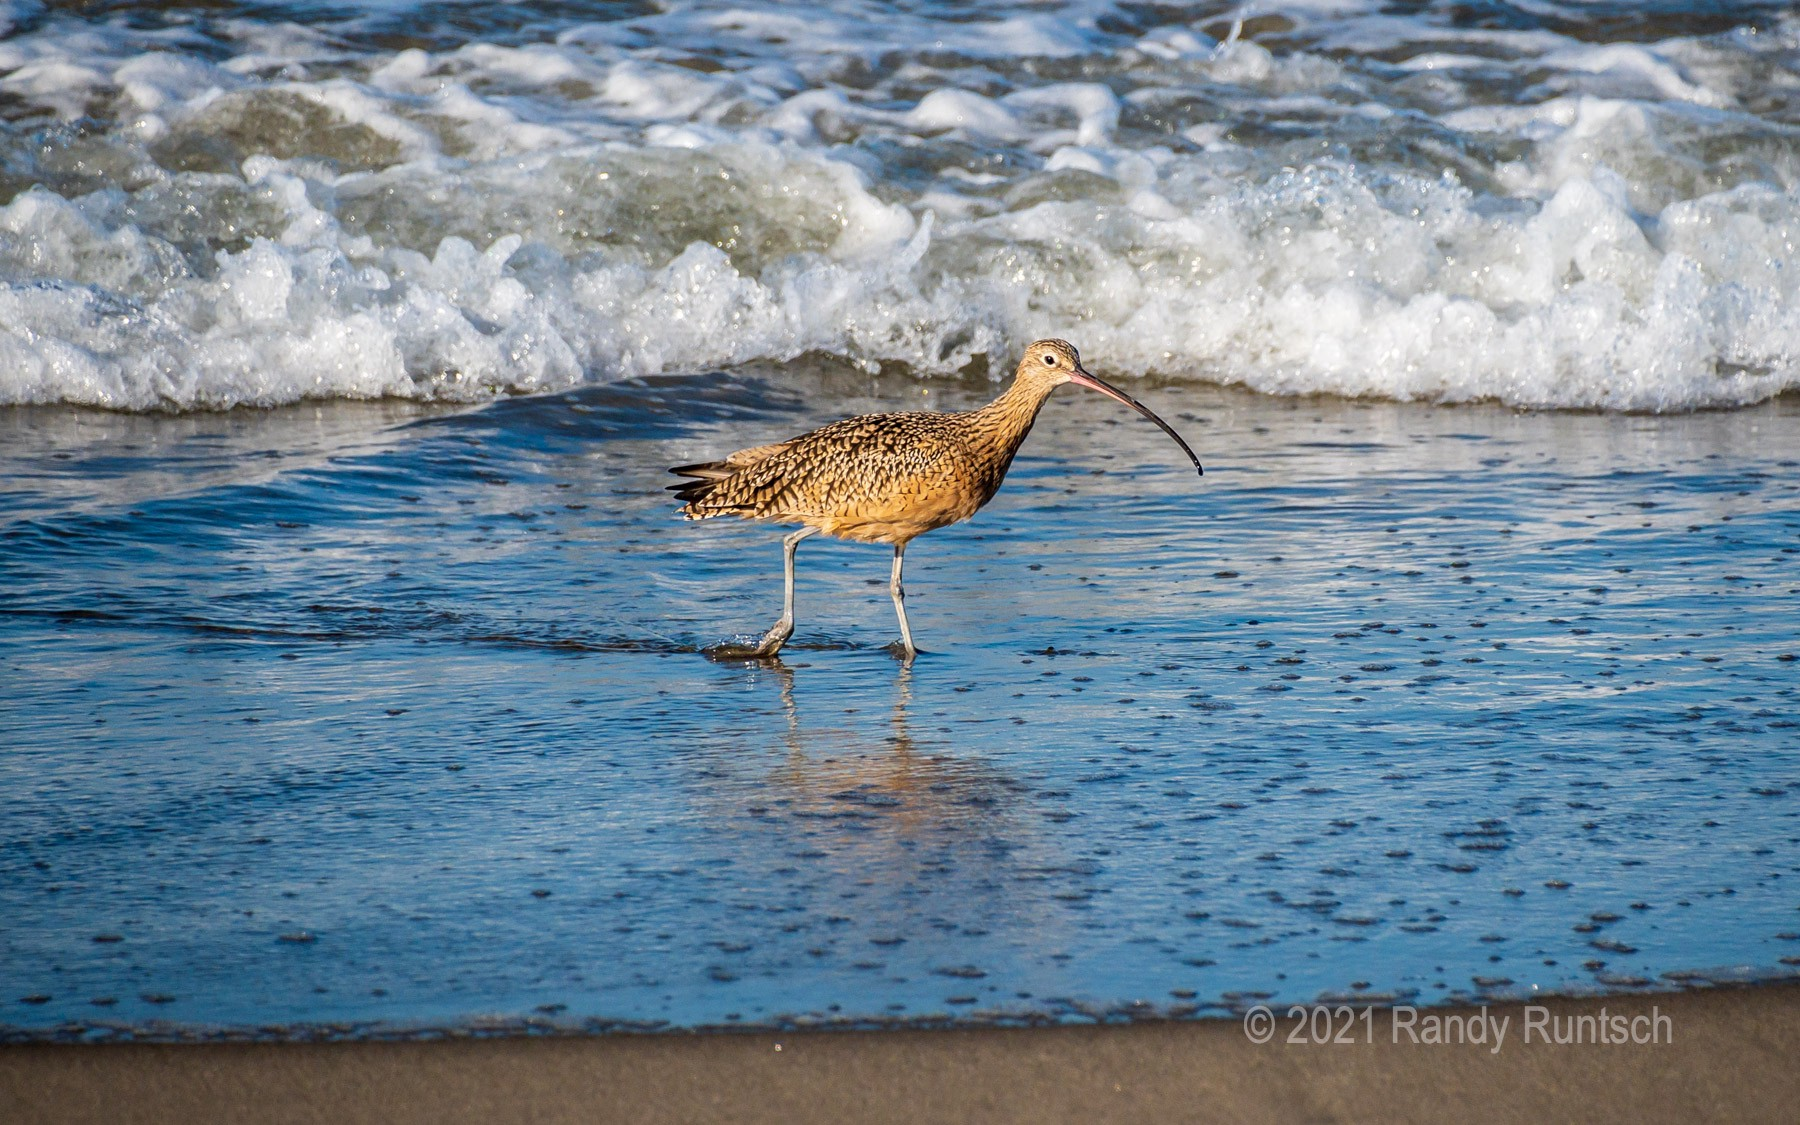 Long-billed curlew walking on the beach at Moss Landing in California.